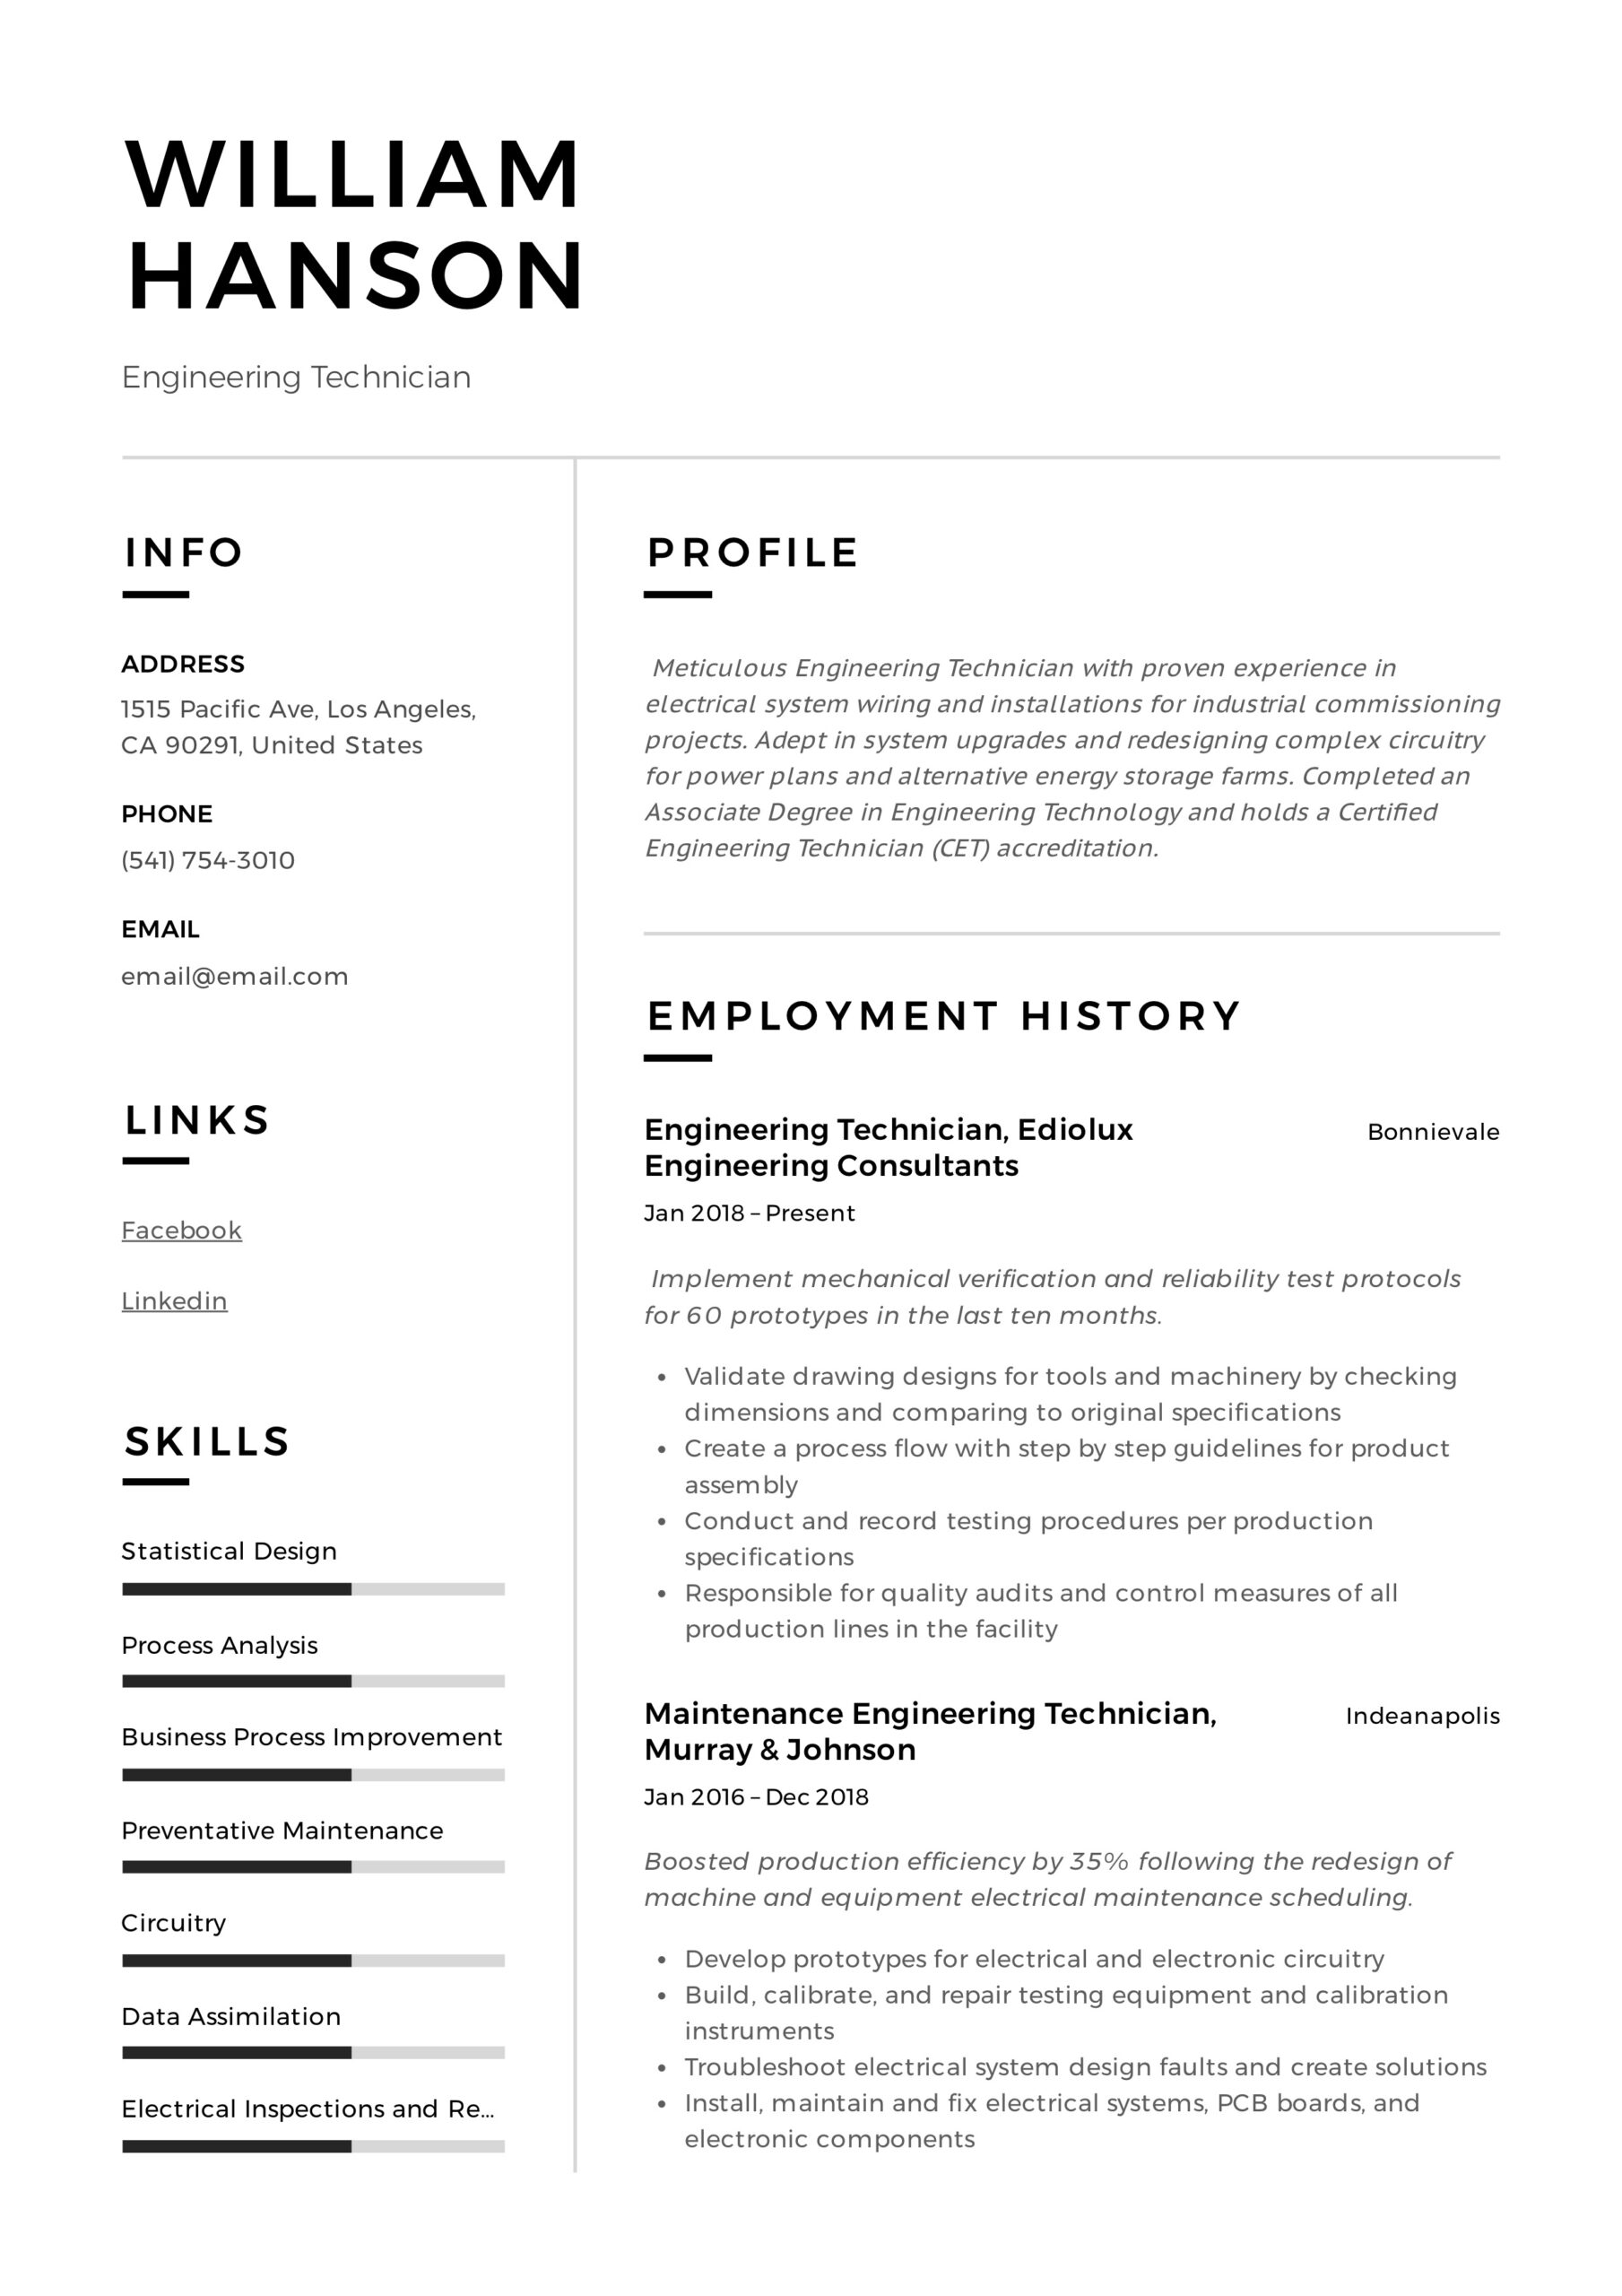 engineering technician resume writing guide templates autocad front end engineer great Resume Autocad Technician Resume